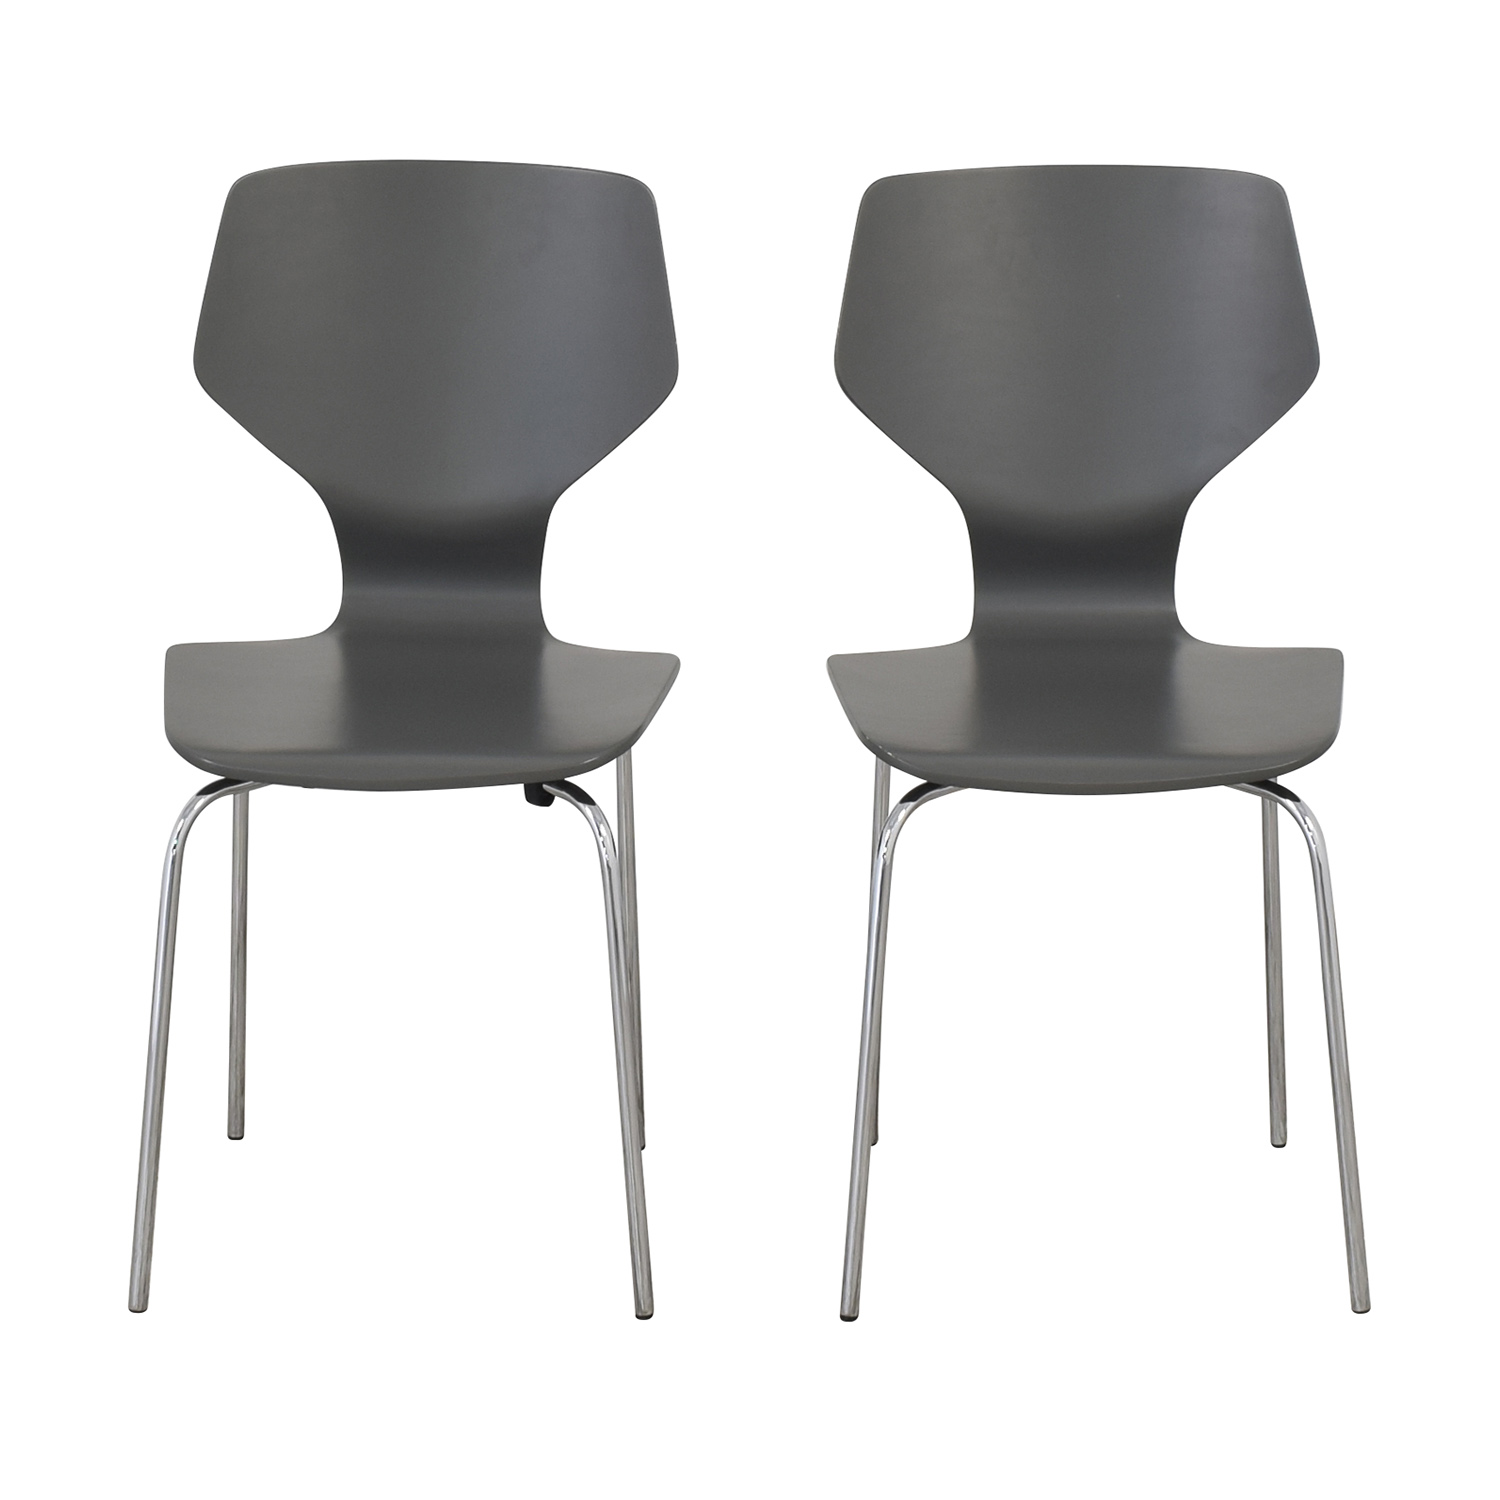 shop Room & Board Room & Board Modern Pike Side Chairs online